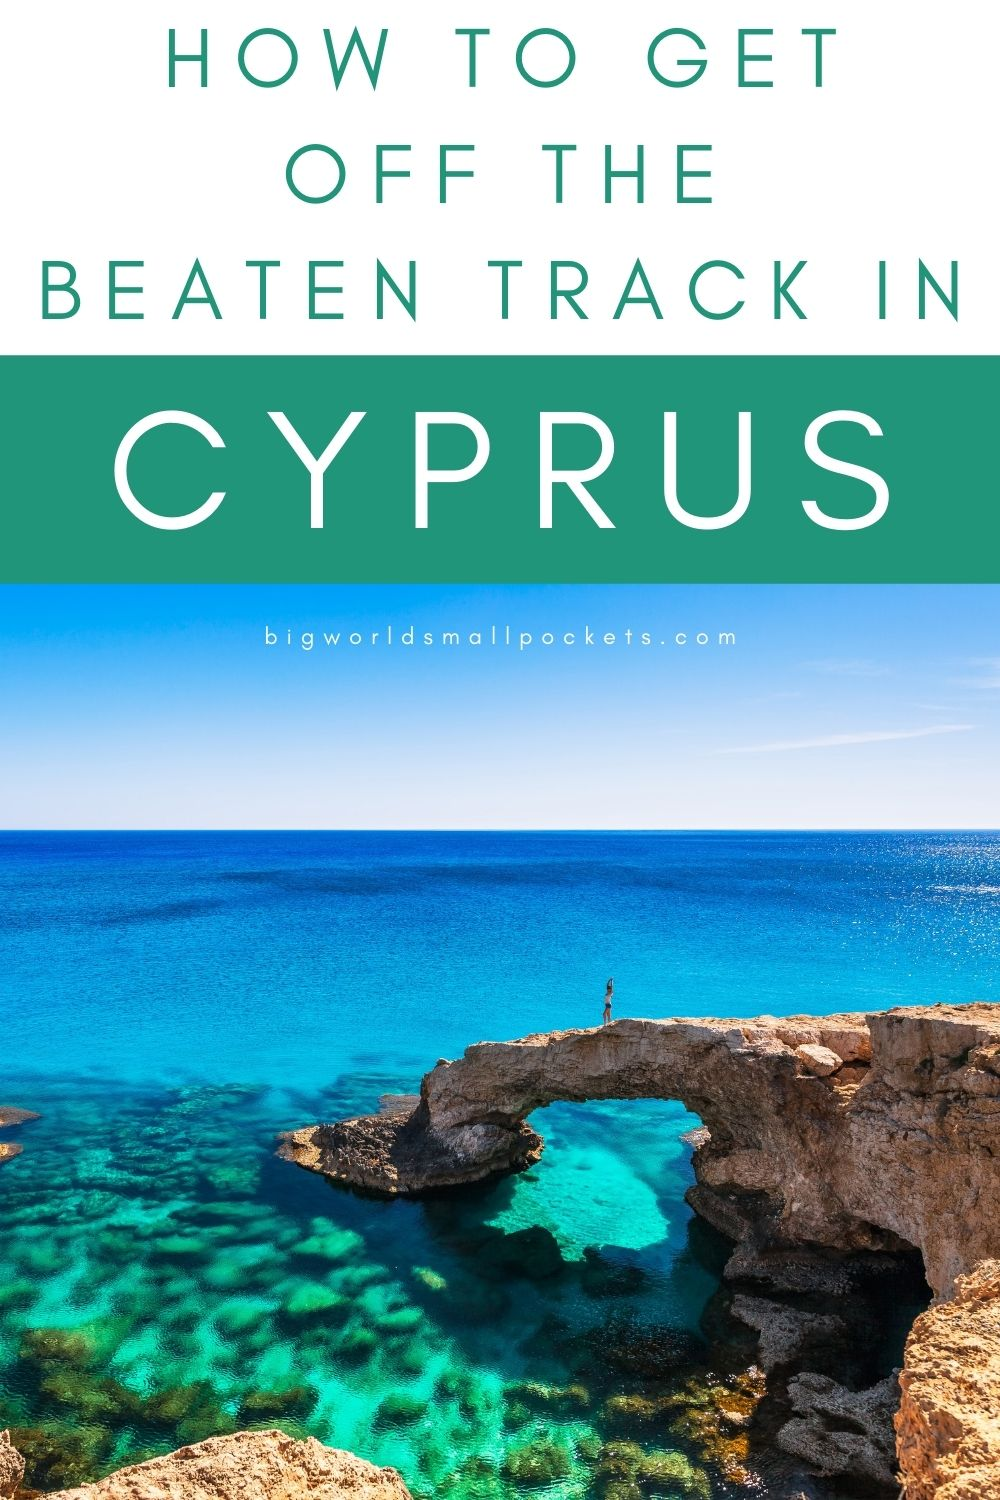 How to Get Off the Beaten Track in Cyprus